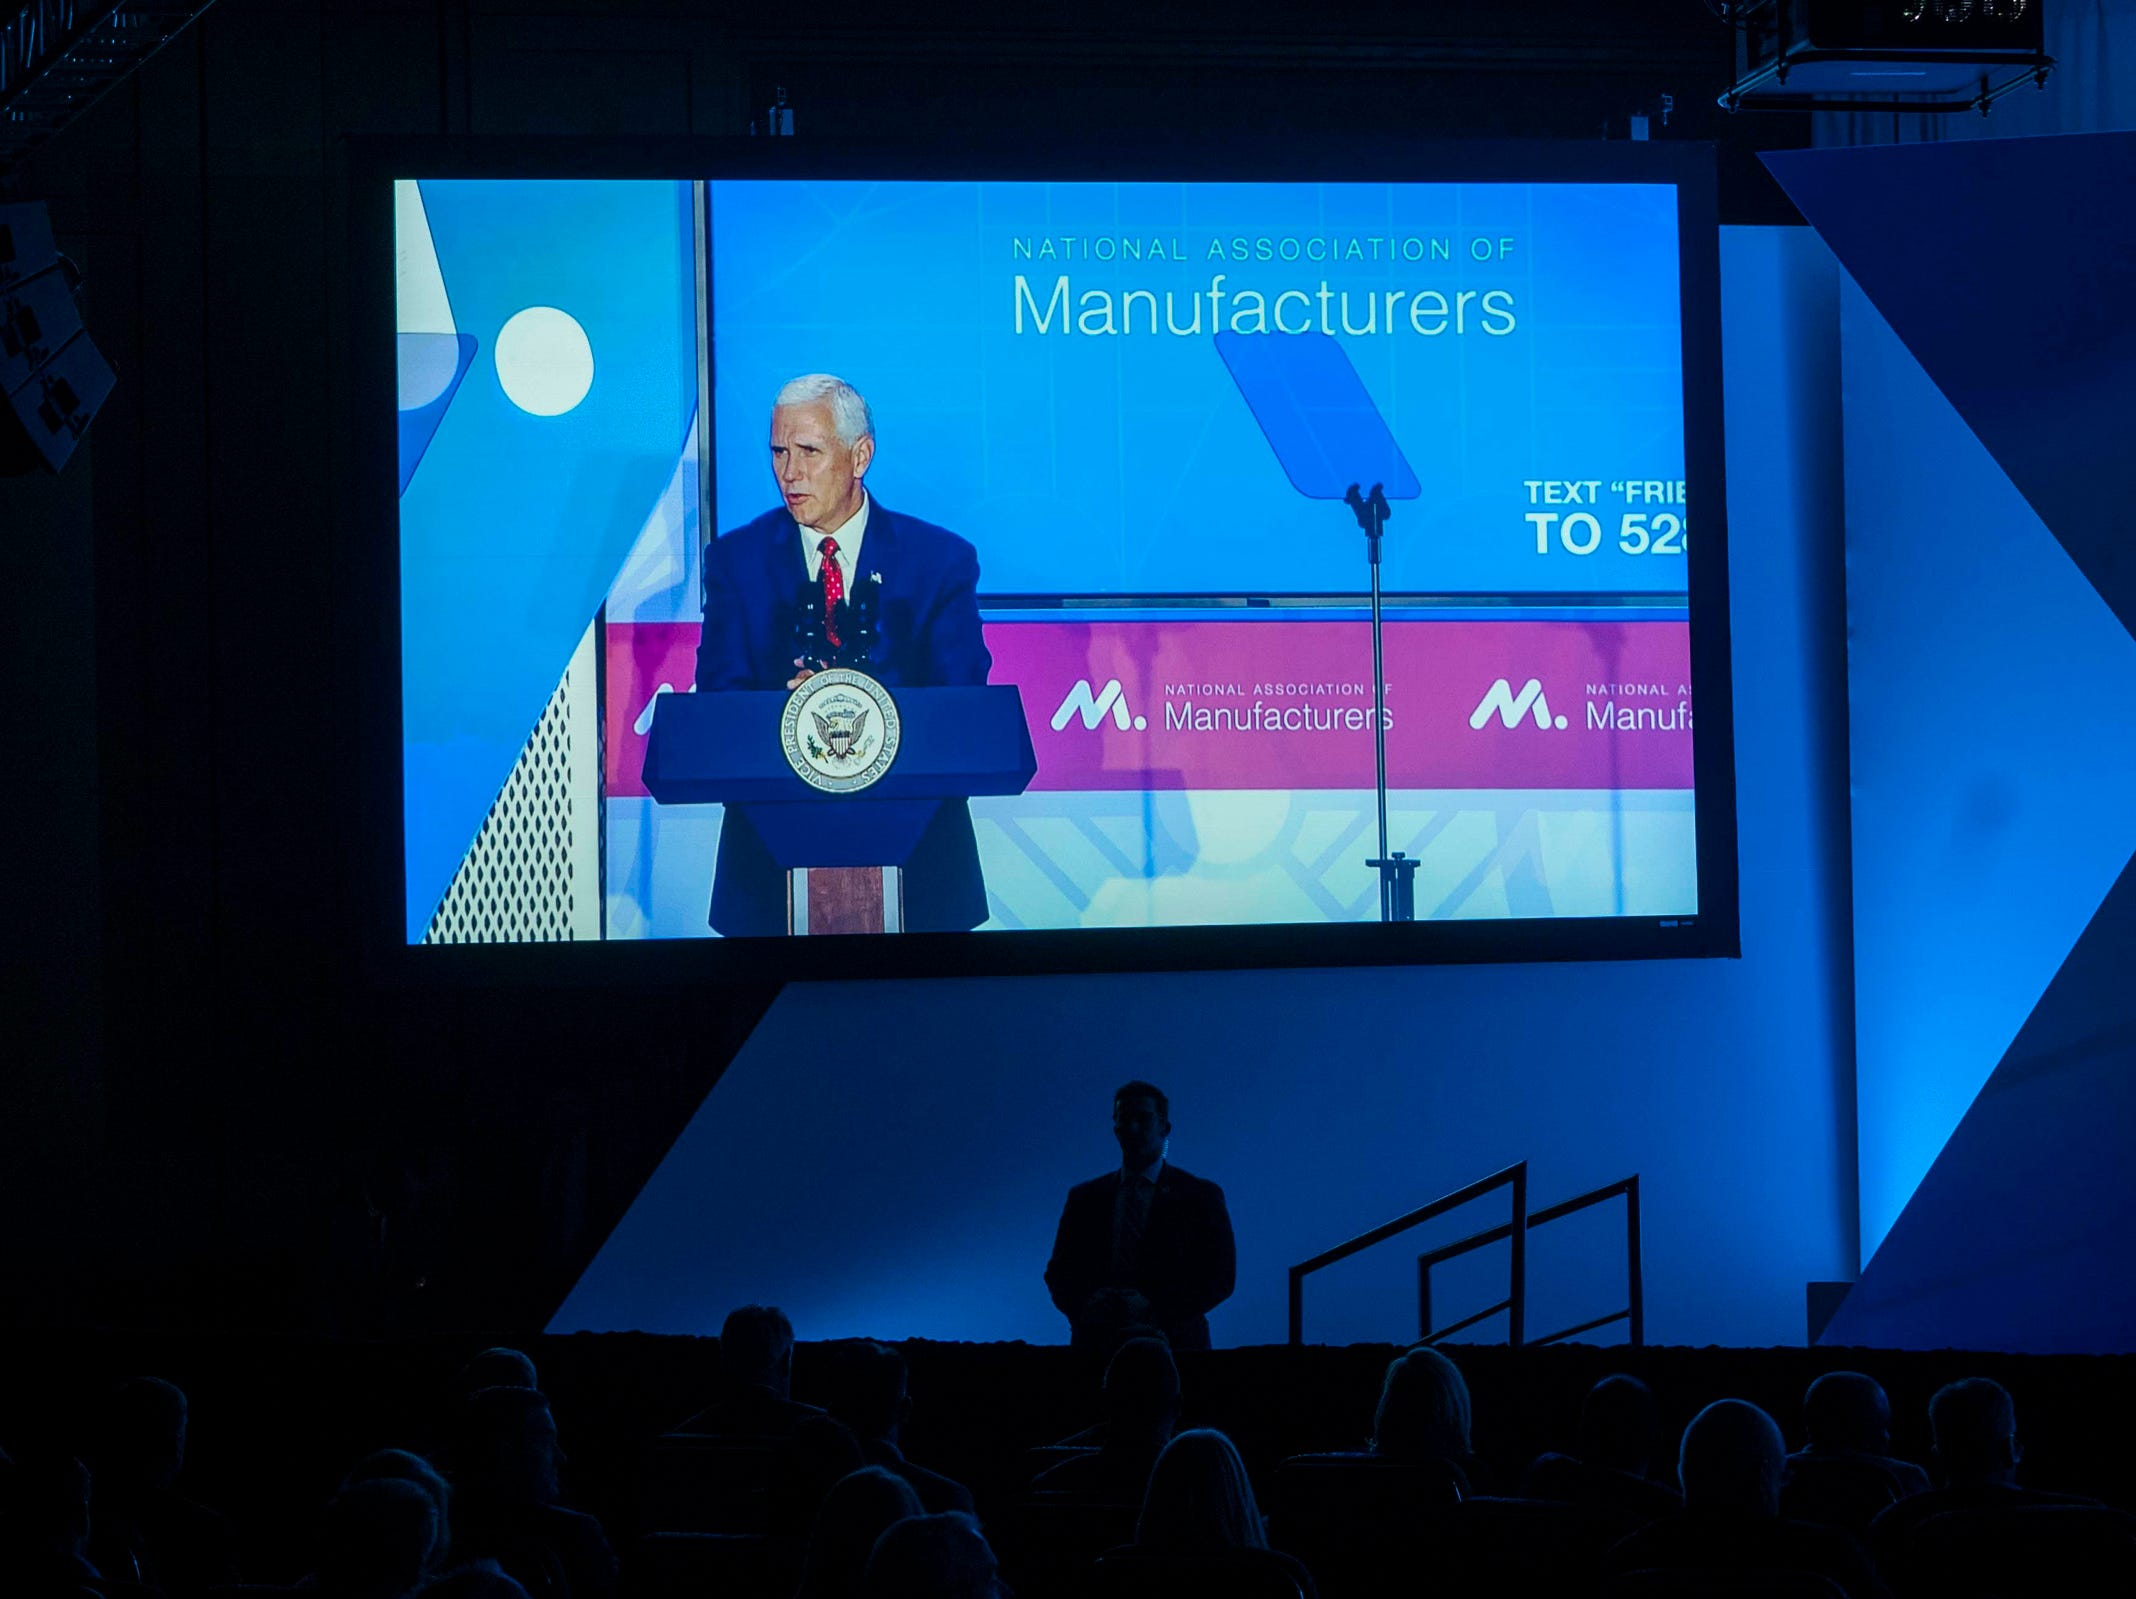 Vice President Mike Pence speaks to representatives of the National Association of Manufacturers at the Phoenician resort in Phoenix on March 5, 2019.